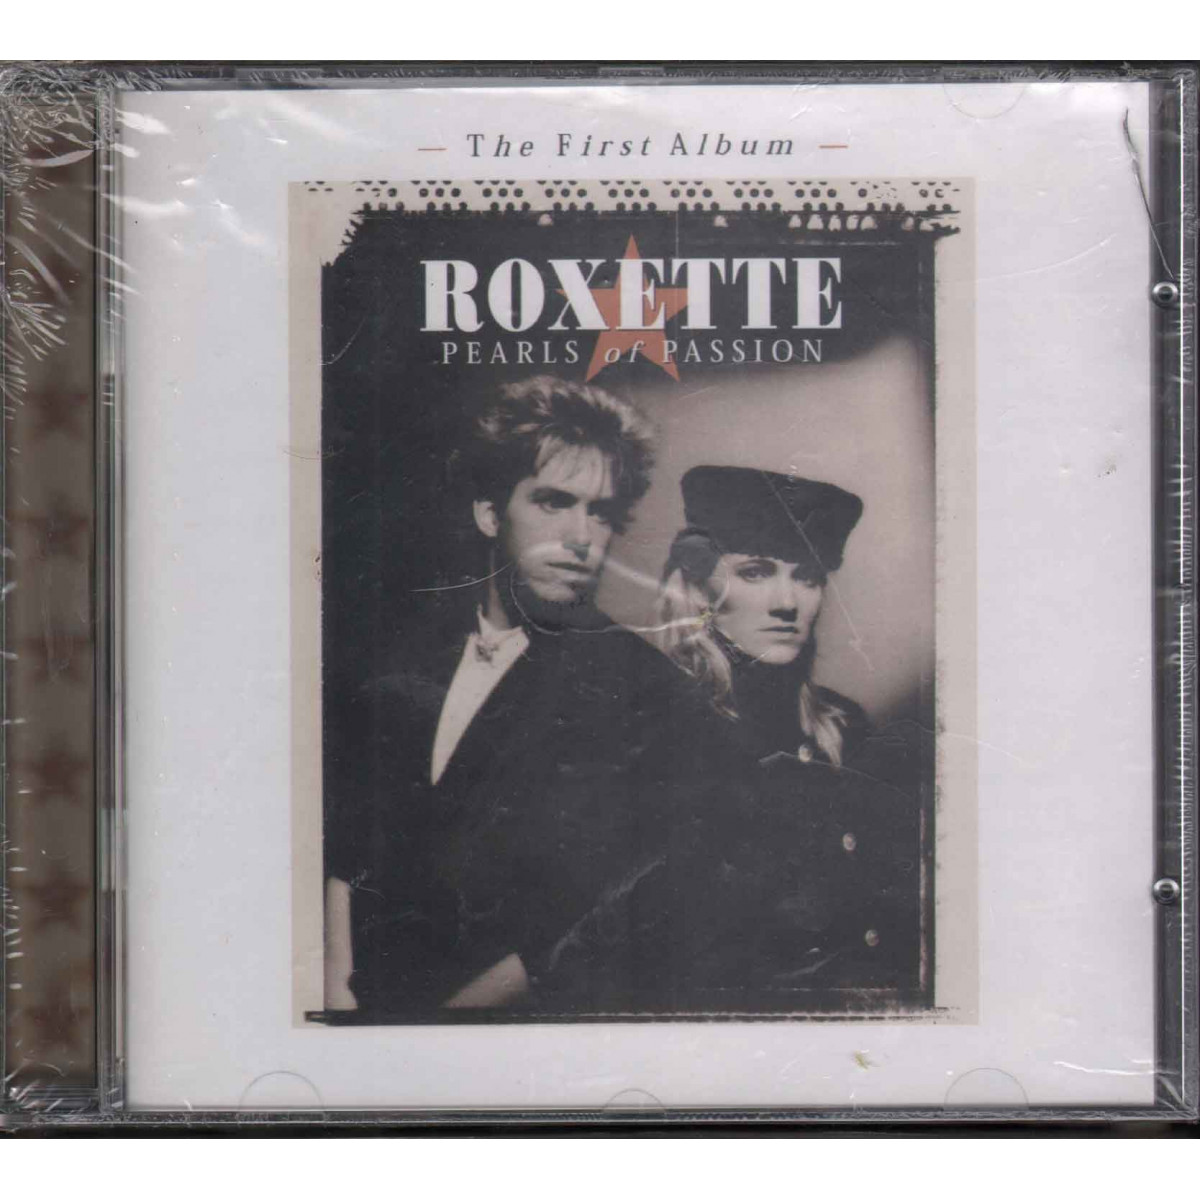 Roxette - Pearls Of Passion (The First Album) EMI 0724383619627